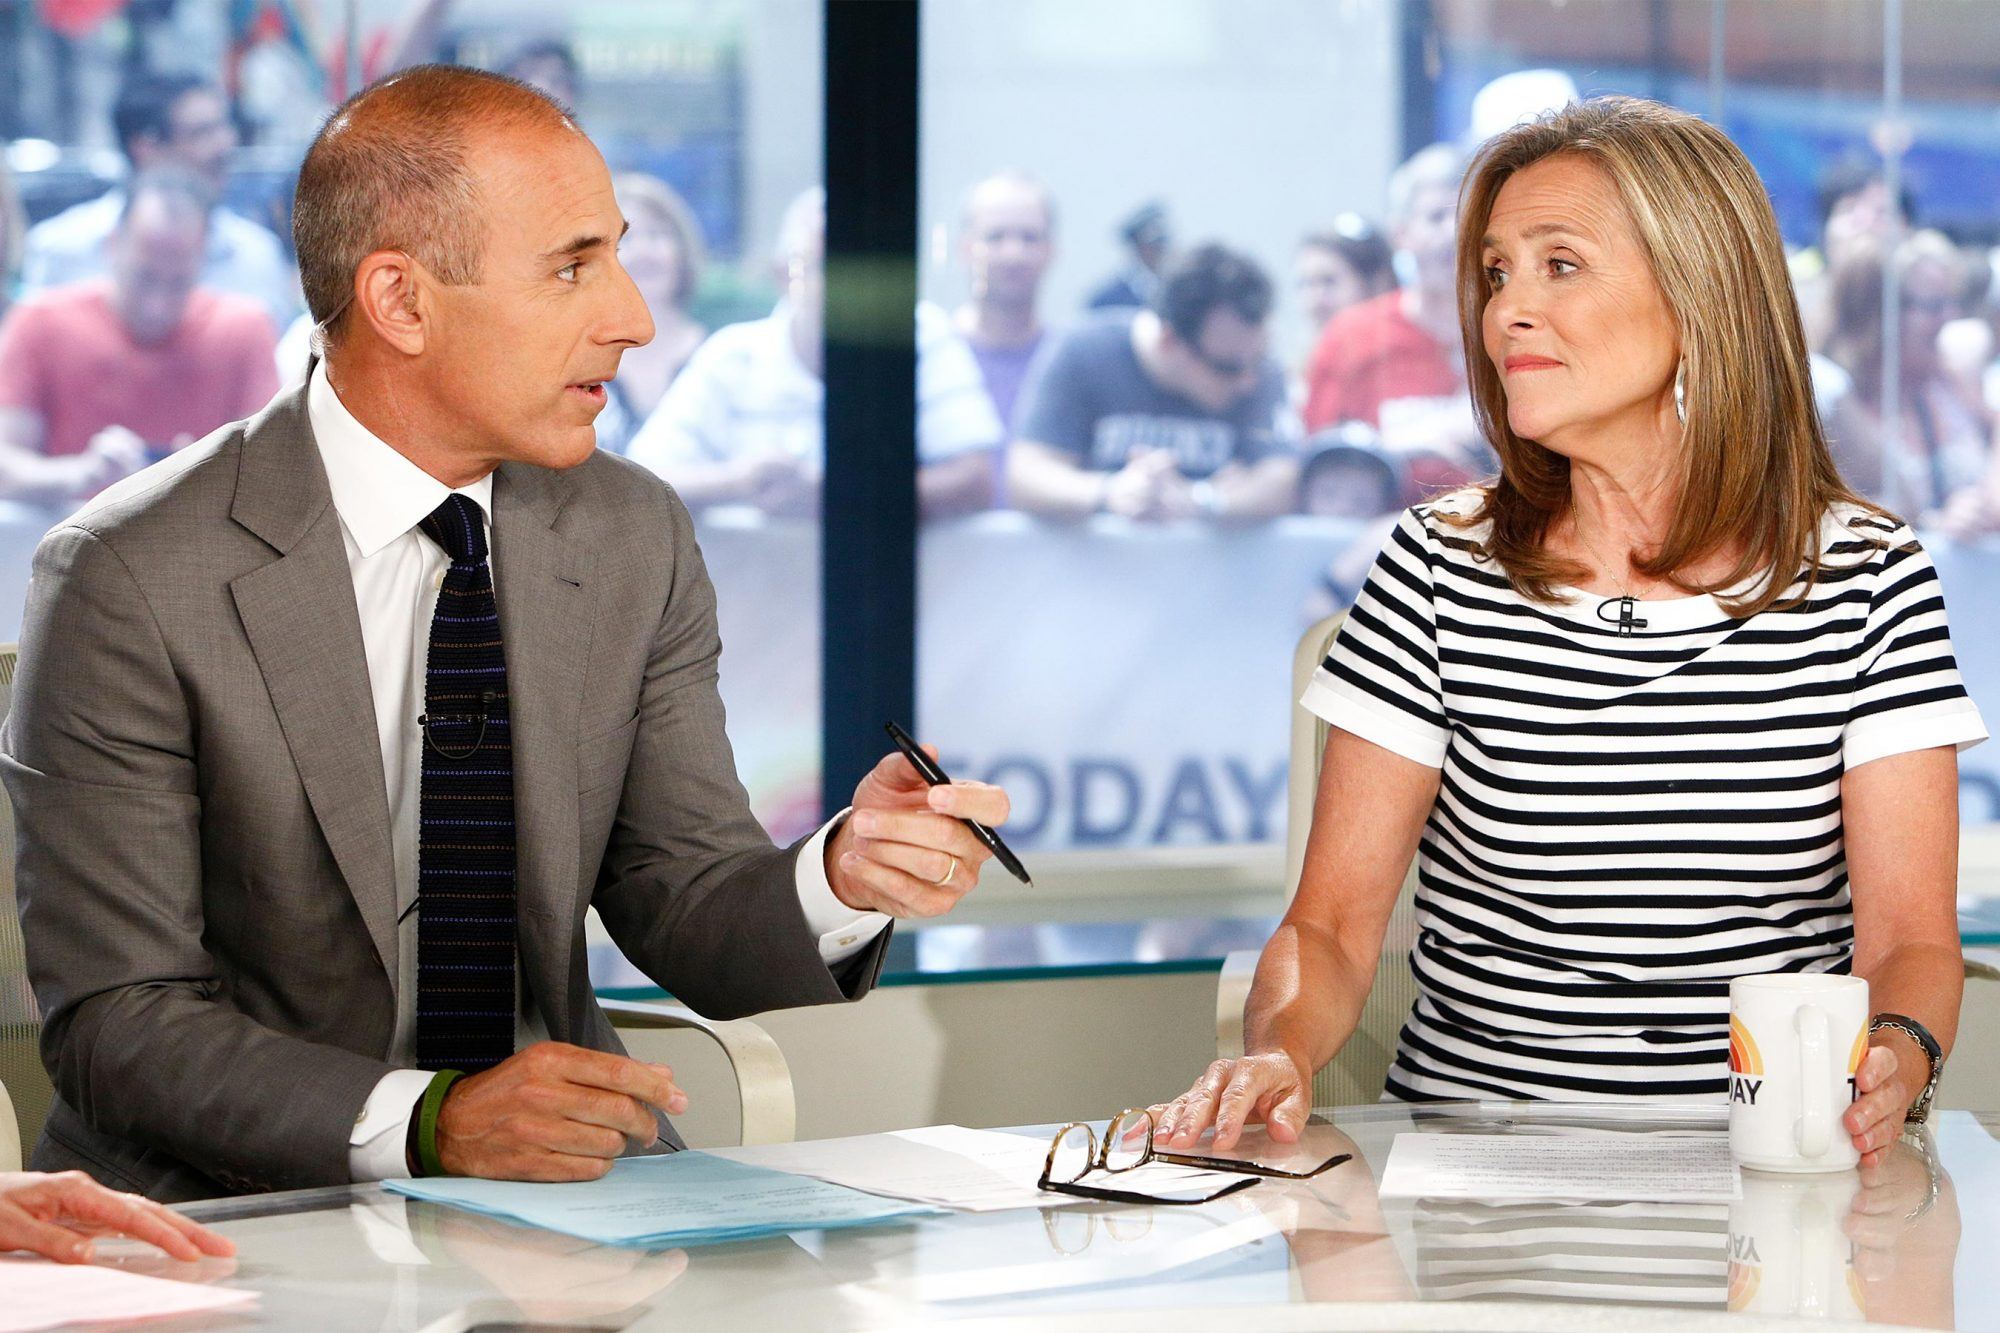 """TODAY -- Pictured: (l-r) Matt Lauer and Meredith Vieira appear on NBC News' """"Today"""" show -- (Photo by: Peter Kramer/NBC/NBC NewsWire via Getty Images)"""